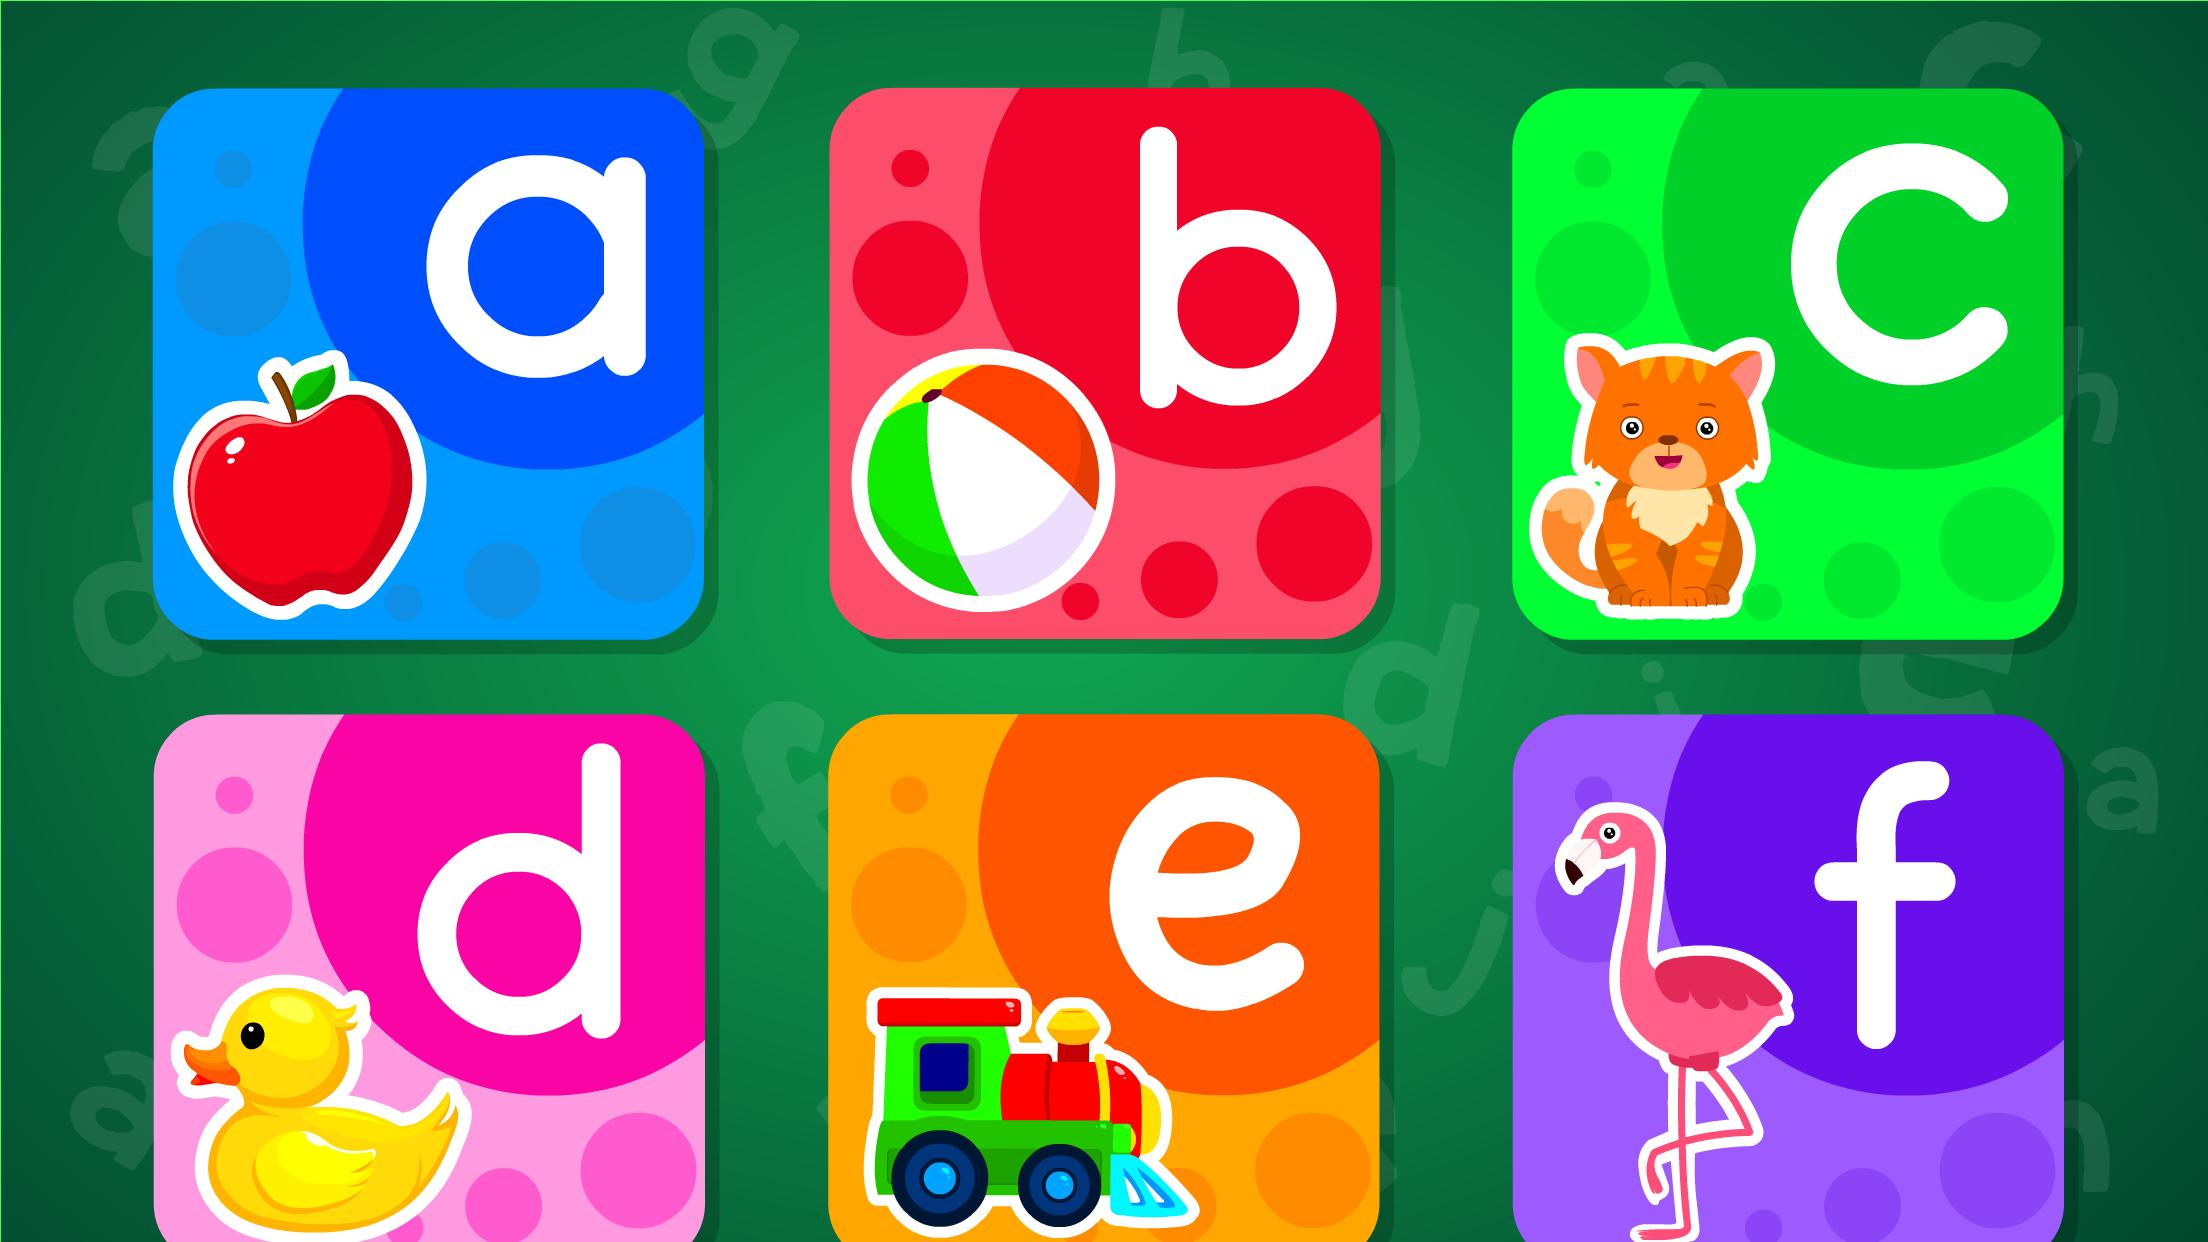 Abc Tracing For Android - Apk Download with Abc Tracing Mod Apk